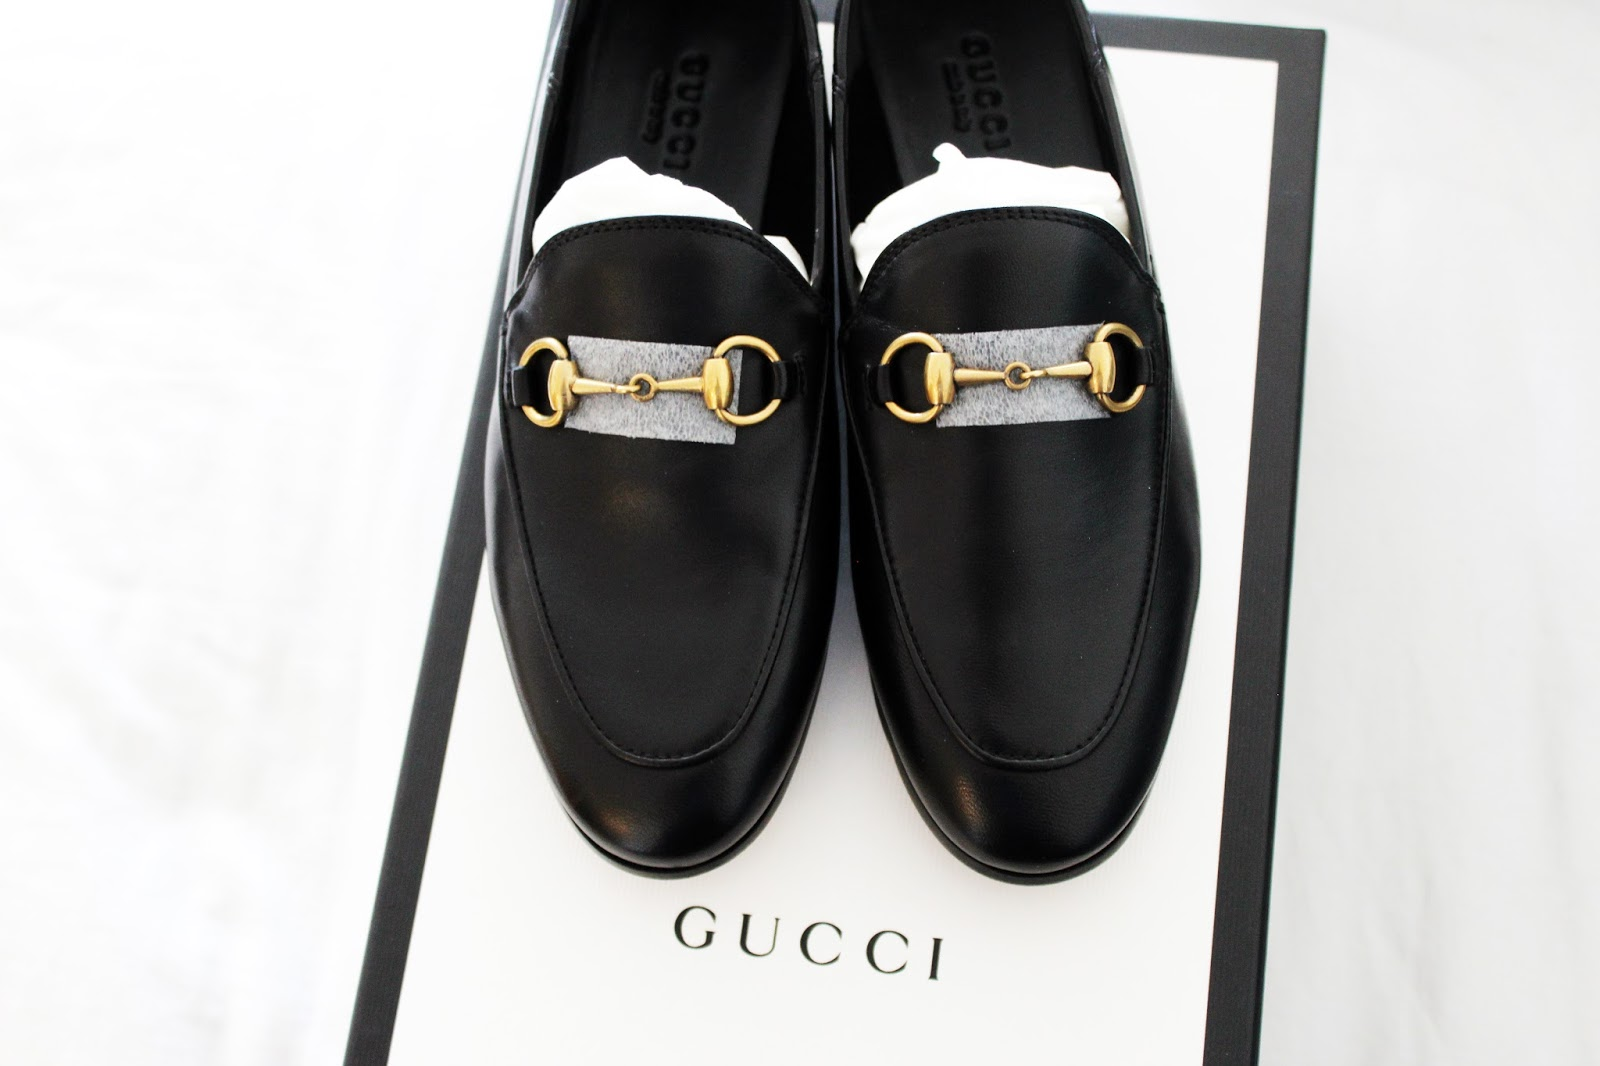 2d4b0233cad I got the Gucci Brixton Loafers in size 35. I have small feet so it can be  hard to find my size. I am between a 5 and 5.5.